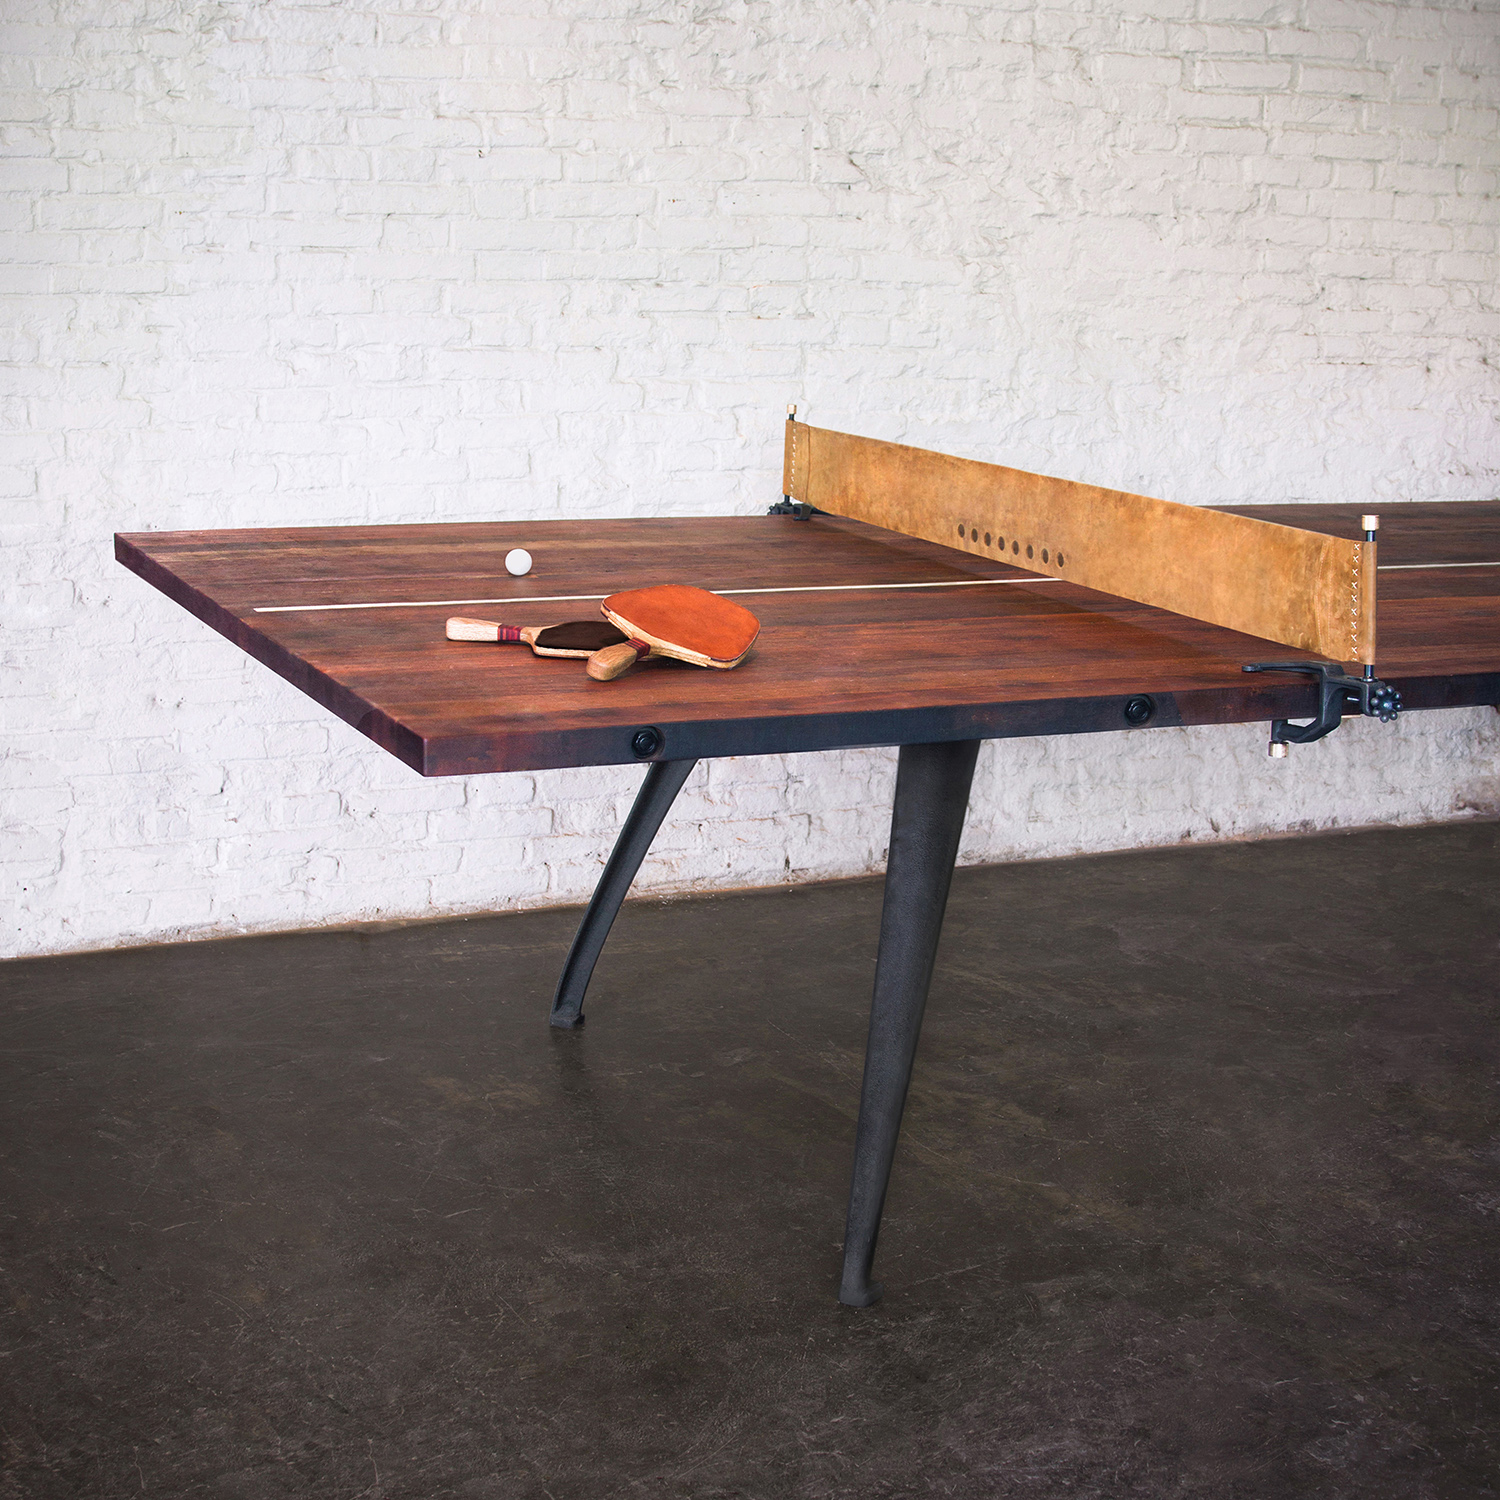 Nuevo modern furniture hgda494 ping pong table gaming table in reclaimed hardwood black cast iron